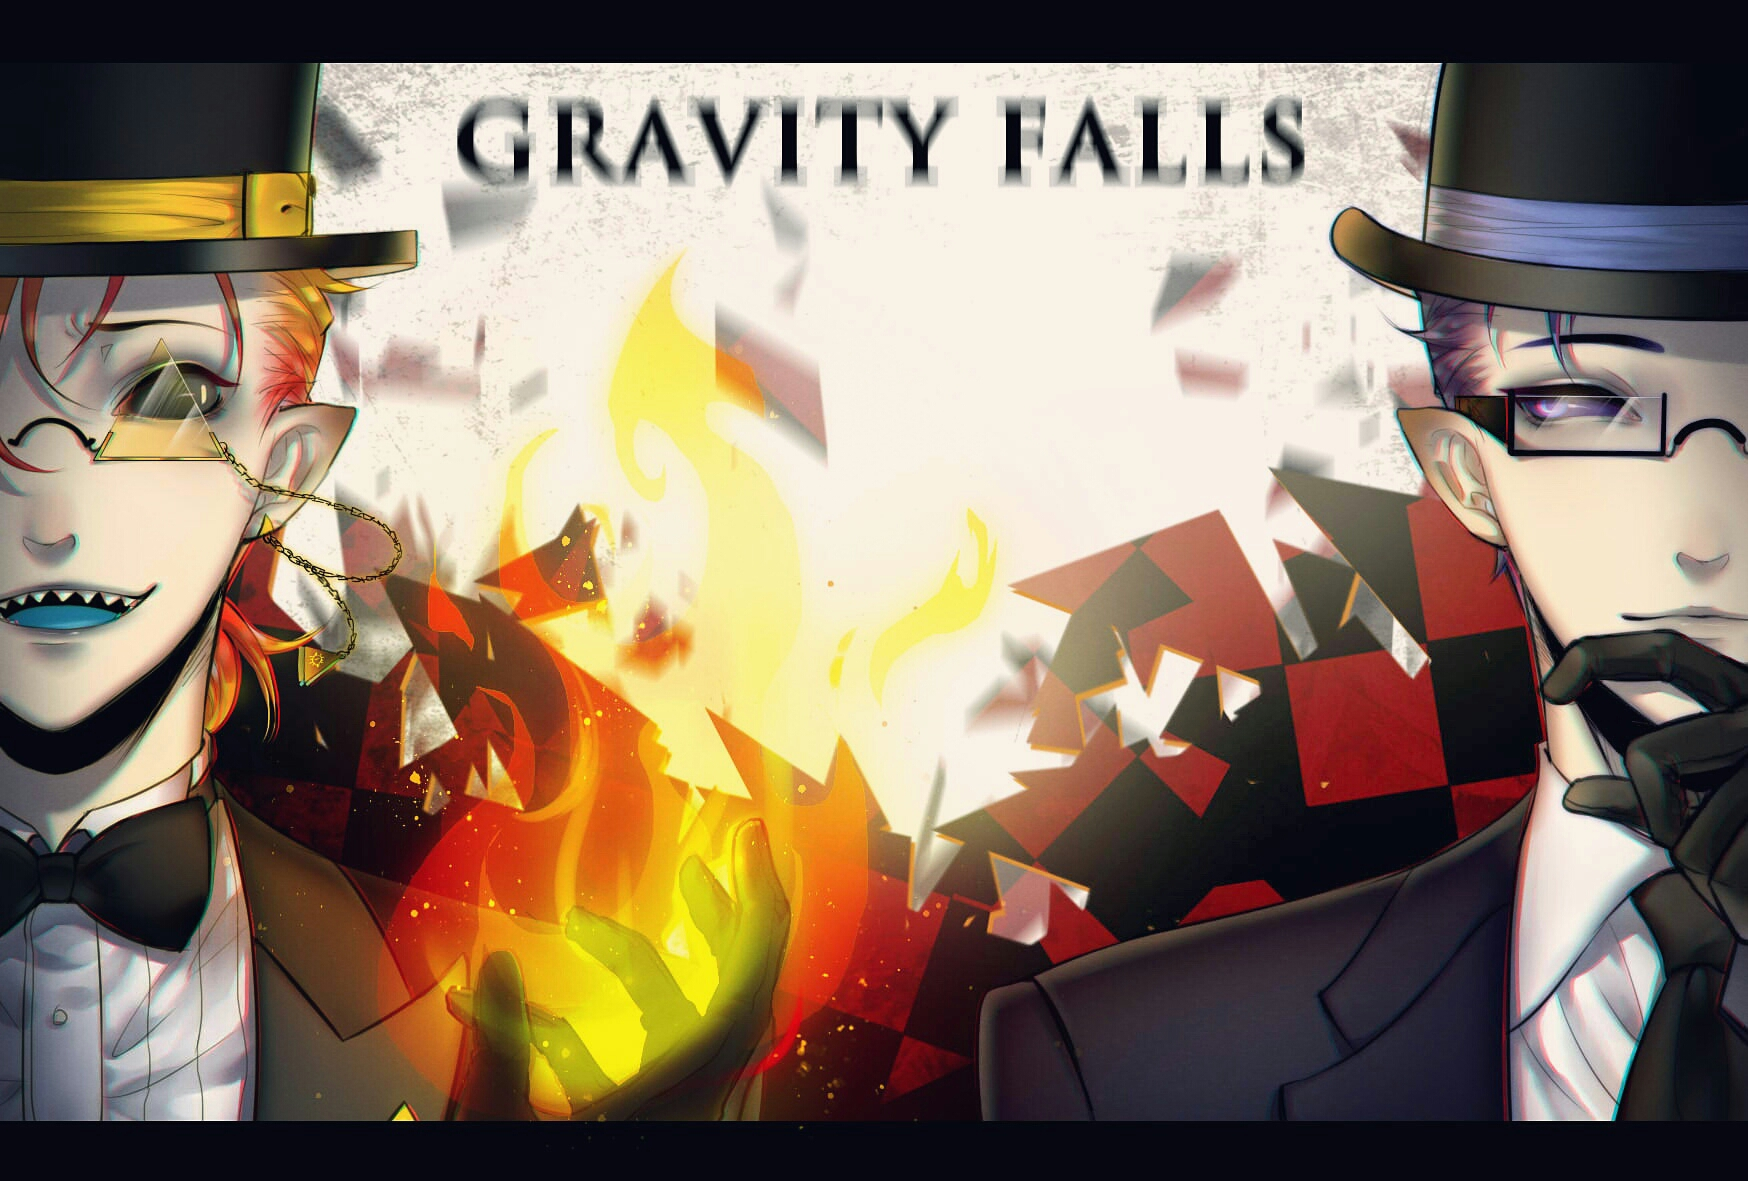 Gravity Falls Wallpaper Android Bill Cipher Gravity Falls Zerochan Anime Image Board